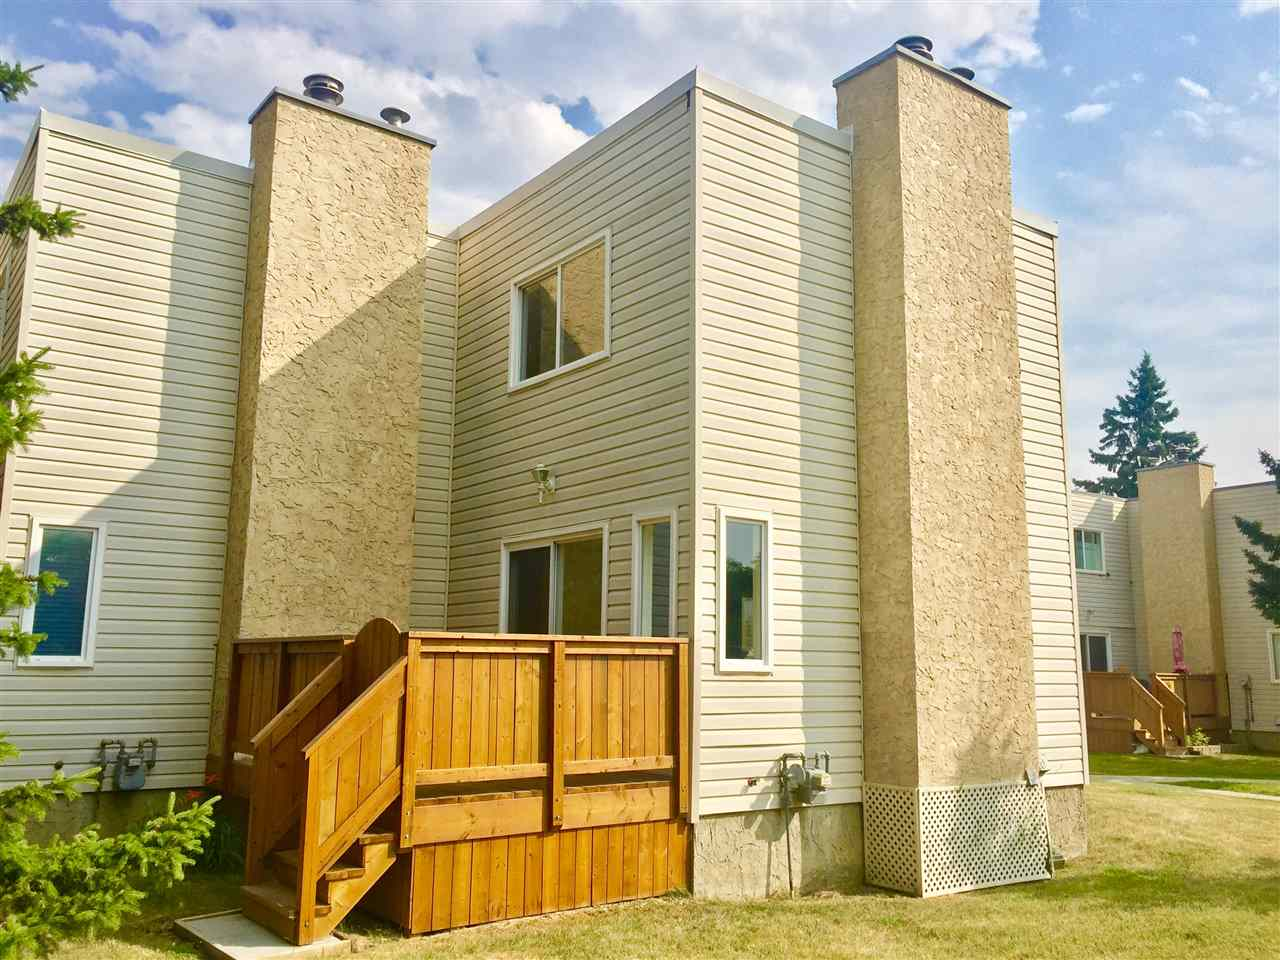 Main Photo: 7222 MILL WOODS Road S in Edmonton: Zone 29 Townhouse for sale : MLS® # E4074013